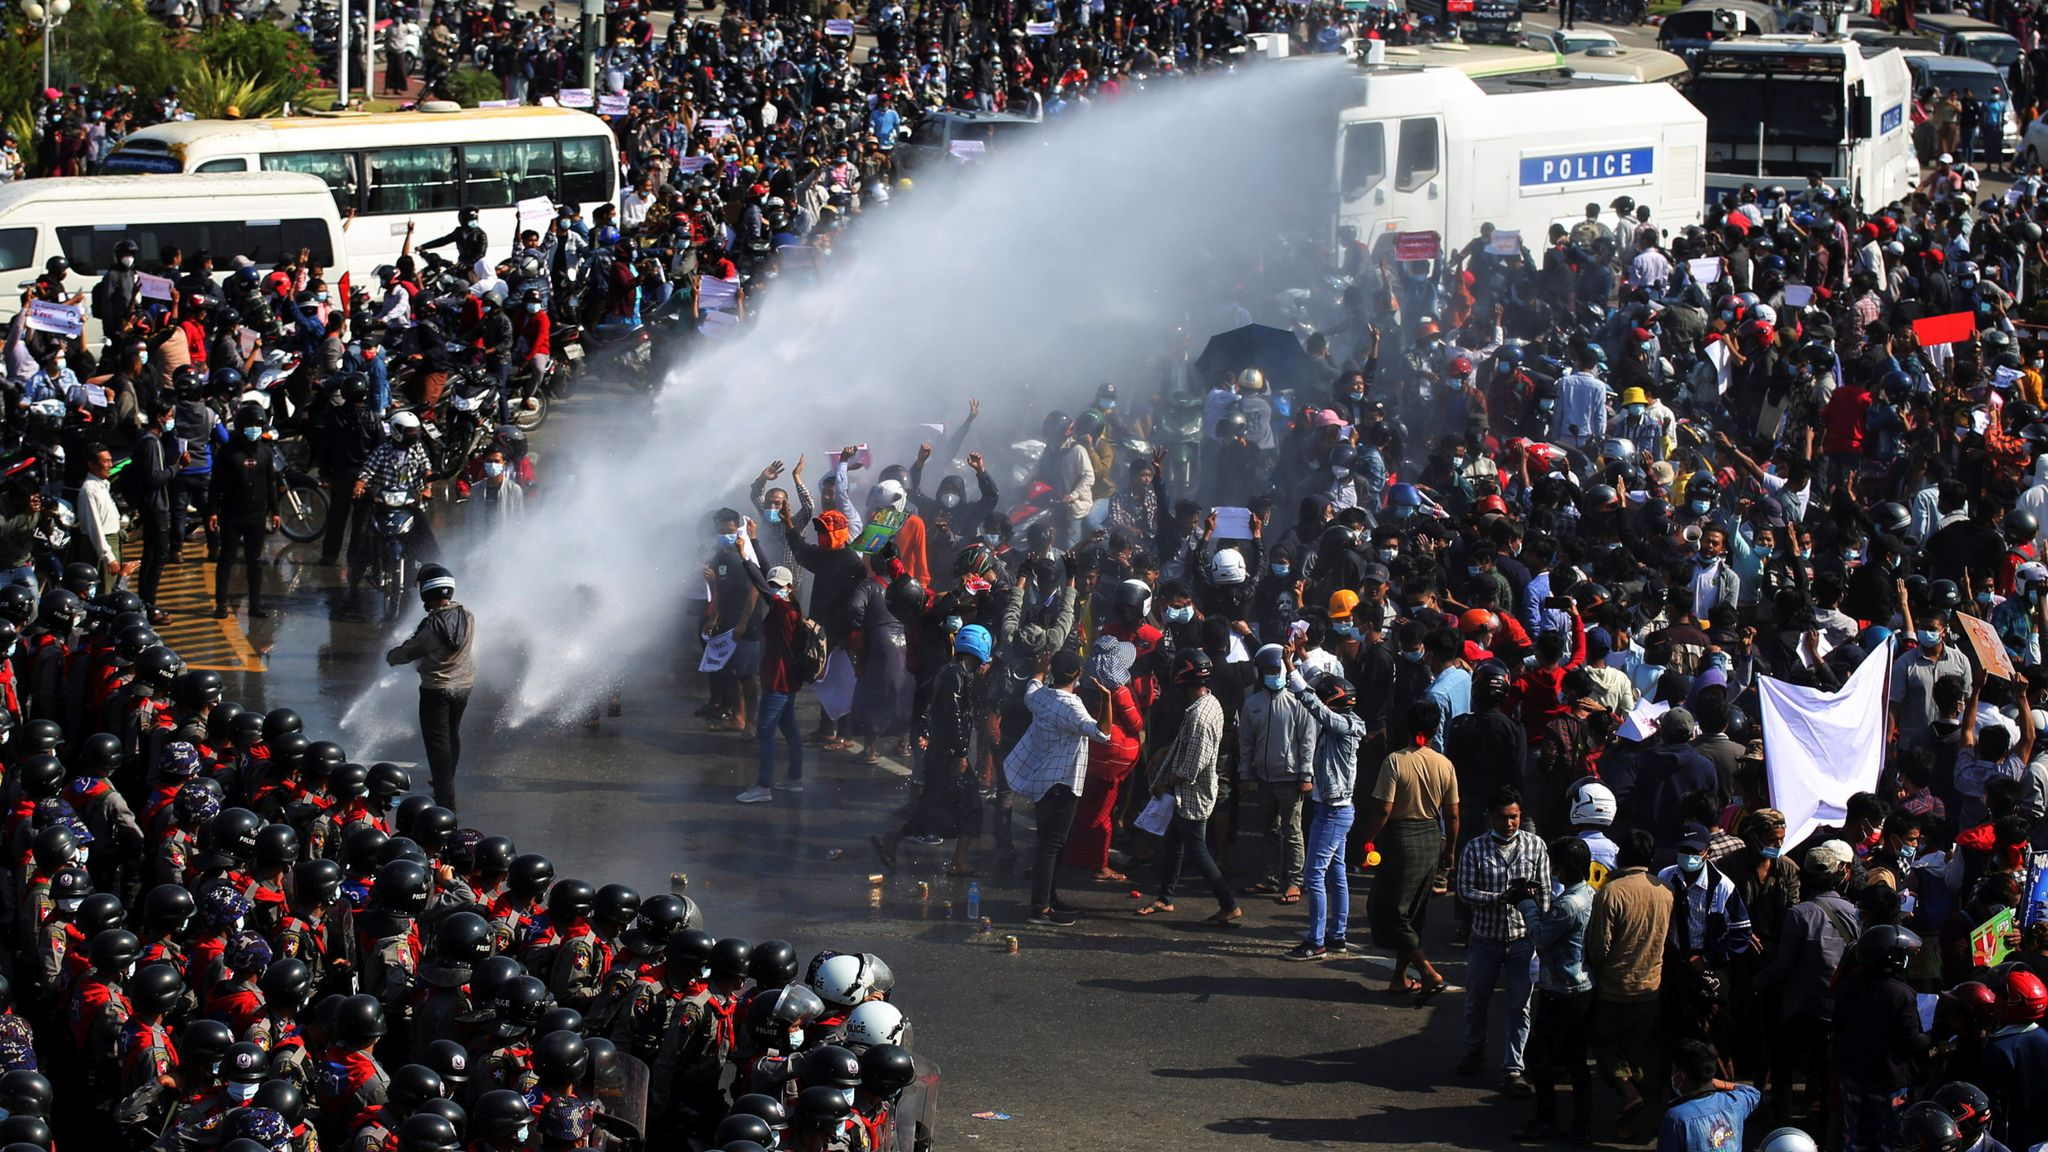 Myanmar: Police fire water cannon as protests grow over military coup |  World News | Sky News